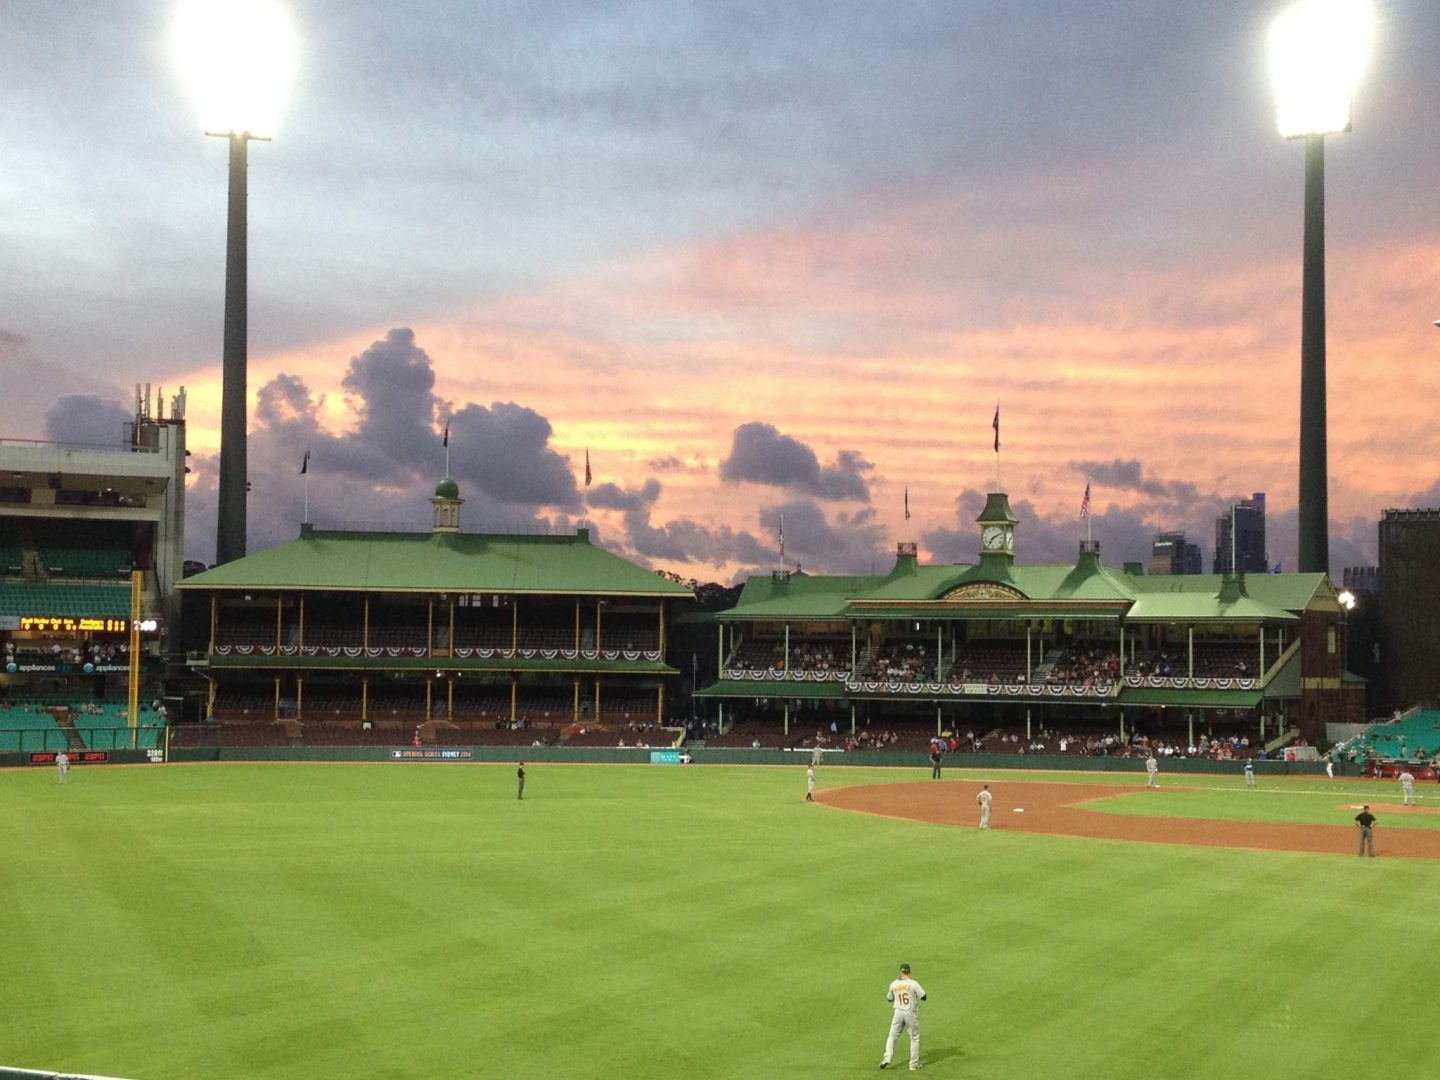 A beautiful sunset over Sydney Cricket Ground